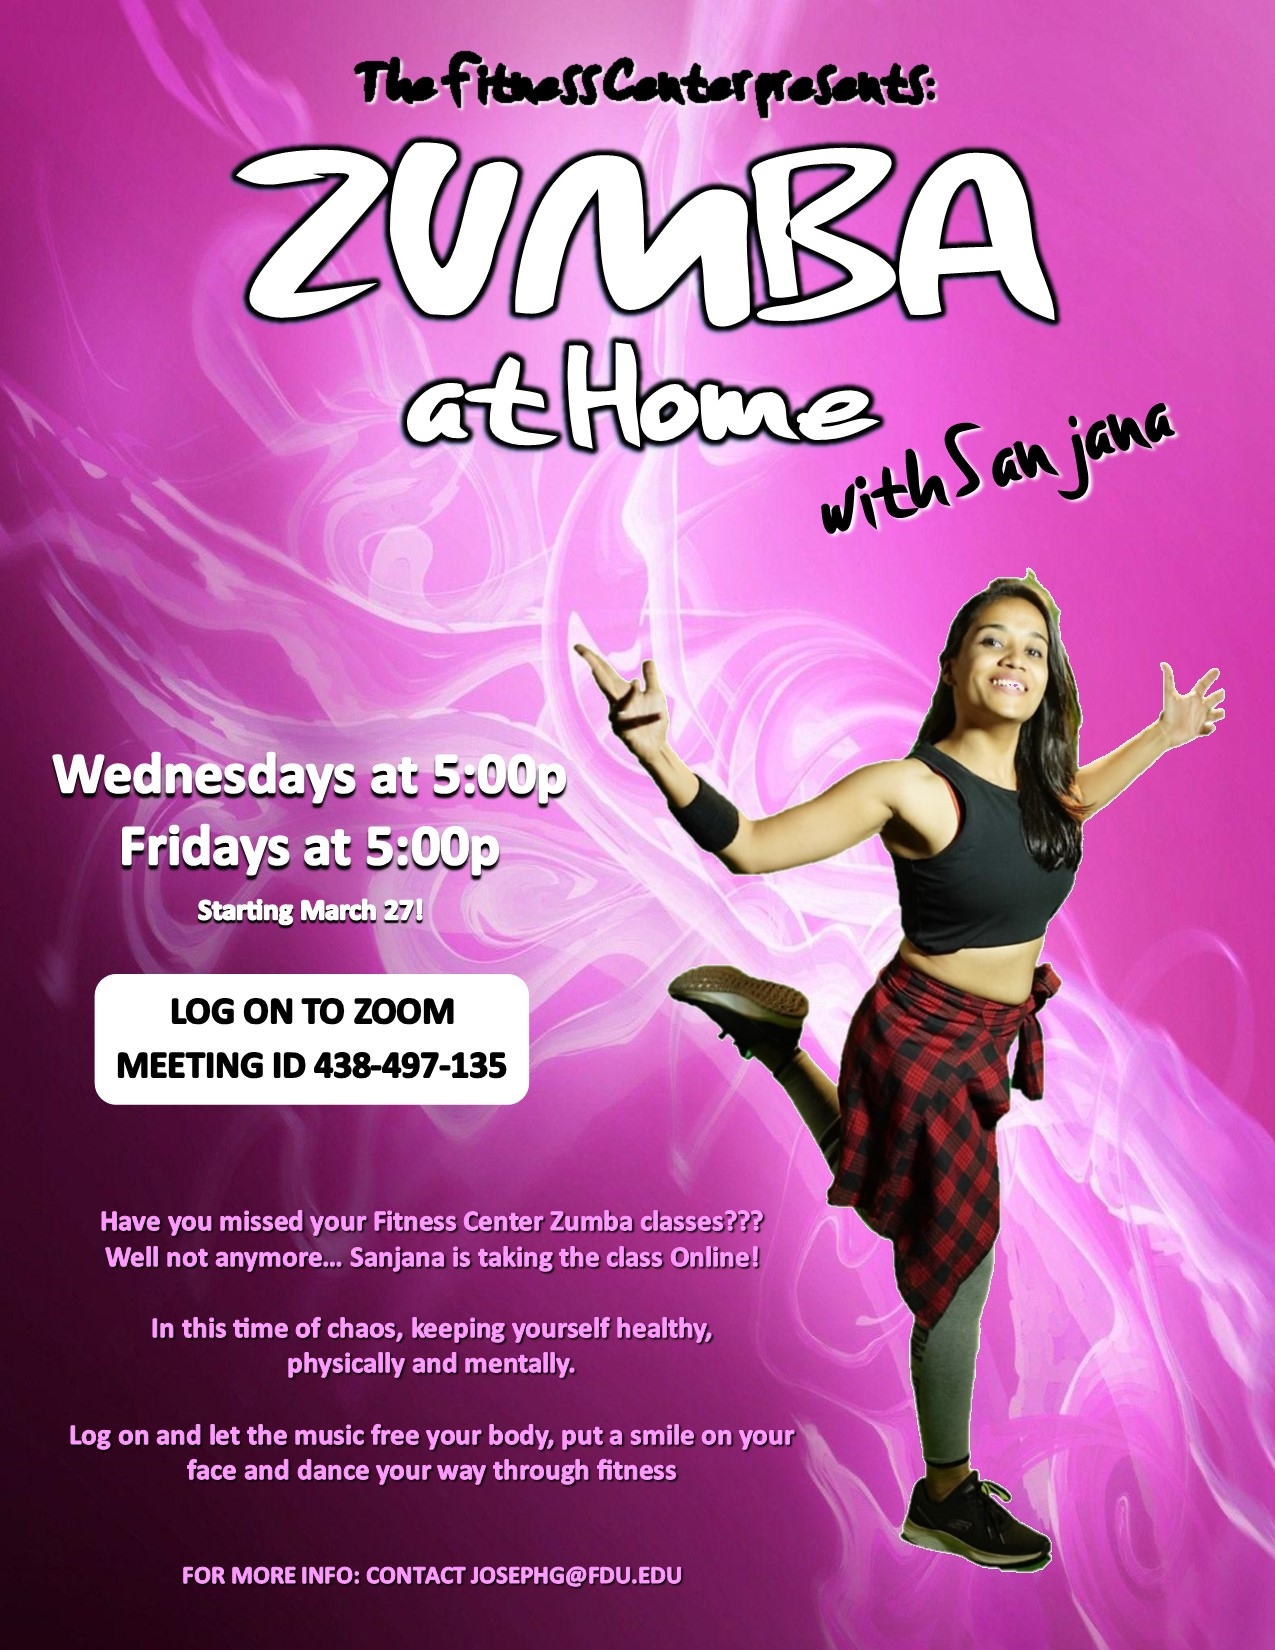 Fdu Fitness Center Intramurals Sur Twitter Have You Missed Our Zumba Classes Well Not Anymore Sanjana Is Taking The Class Online Zumba At Home With Sanjana Class Will Be Held